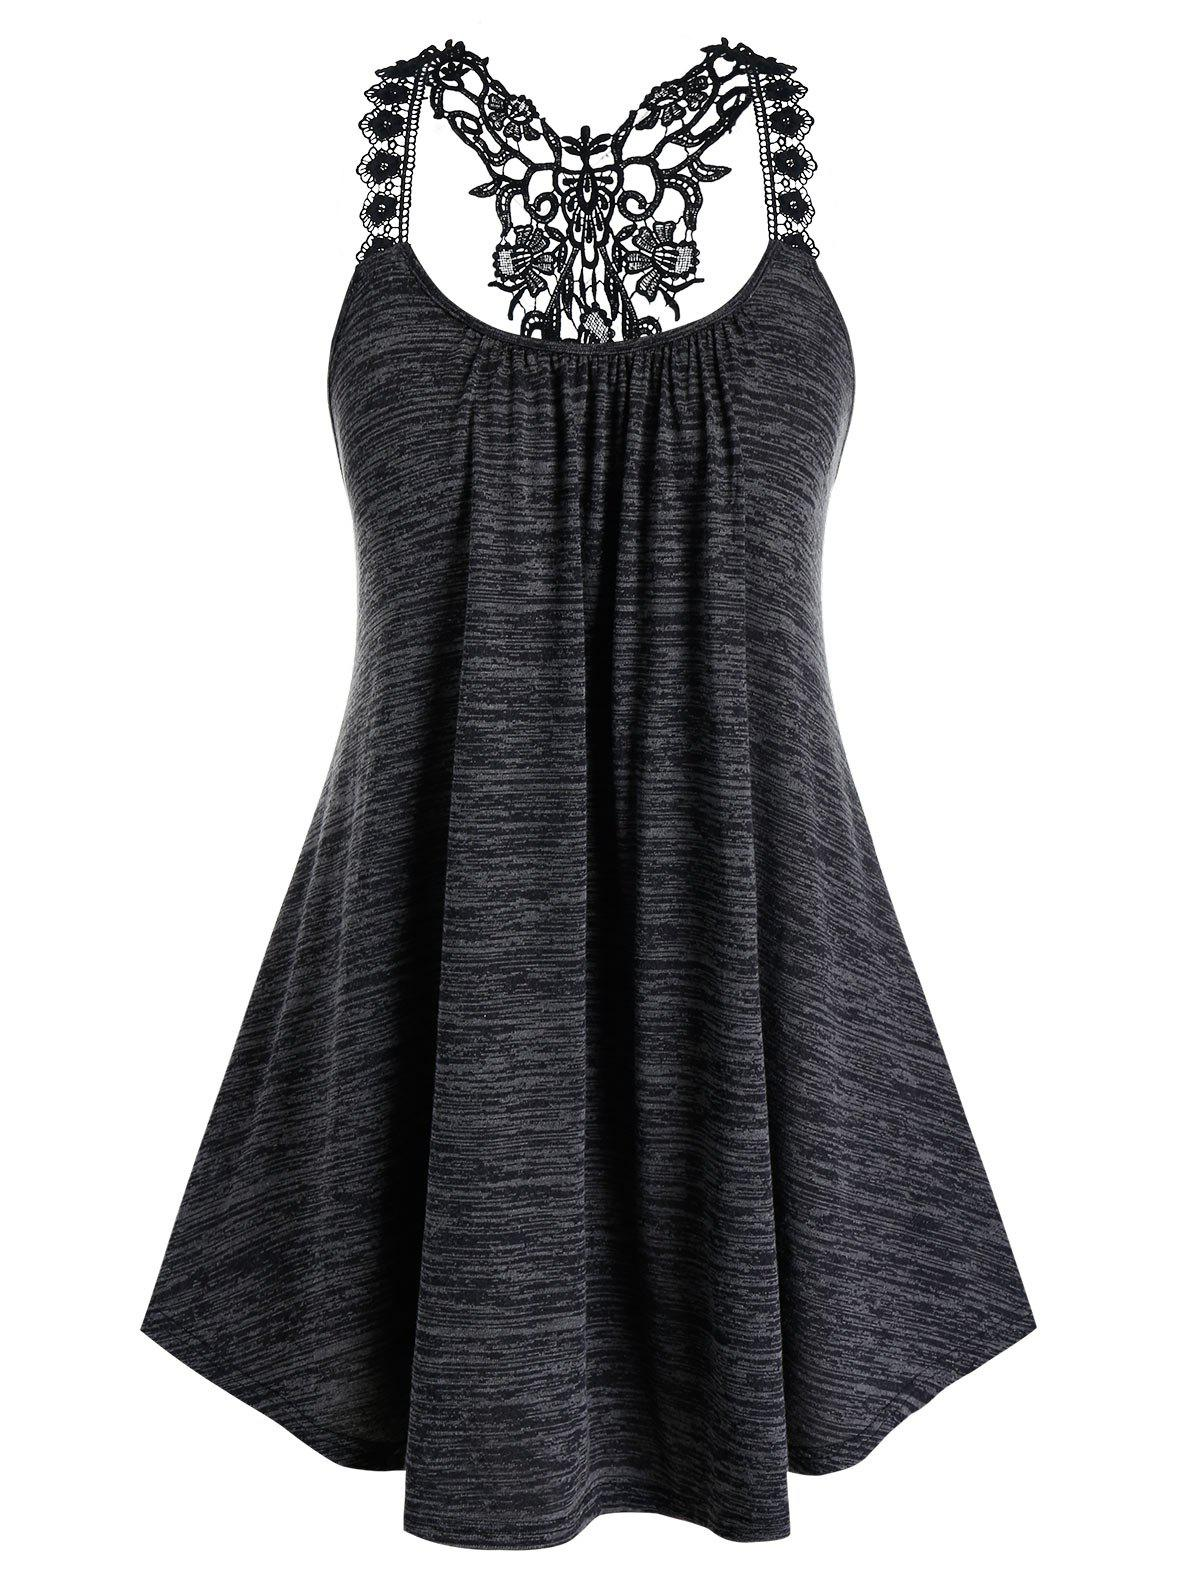 Plus Size Floral Embroidery Strap Tank Top - CARBON GRAY 4X